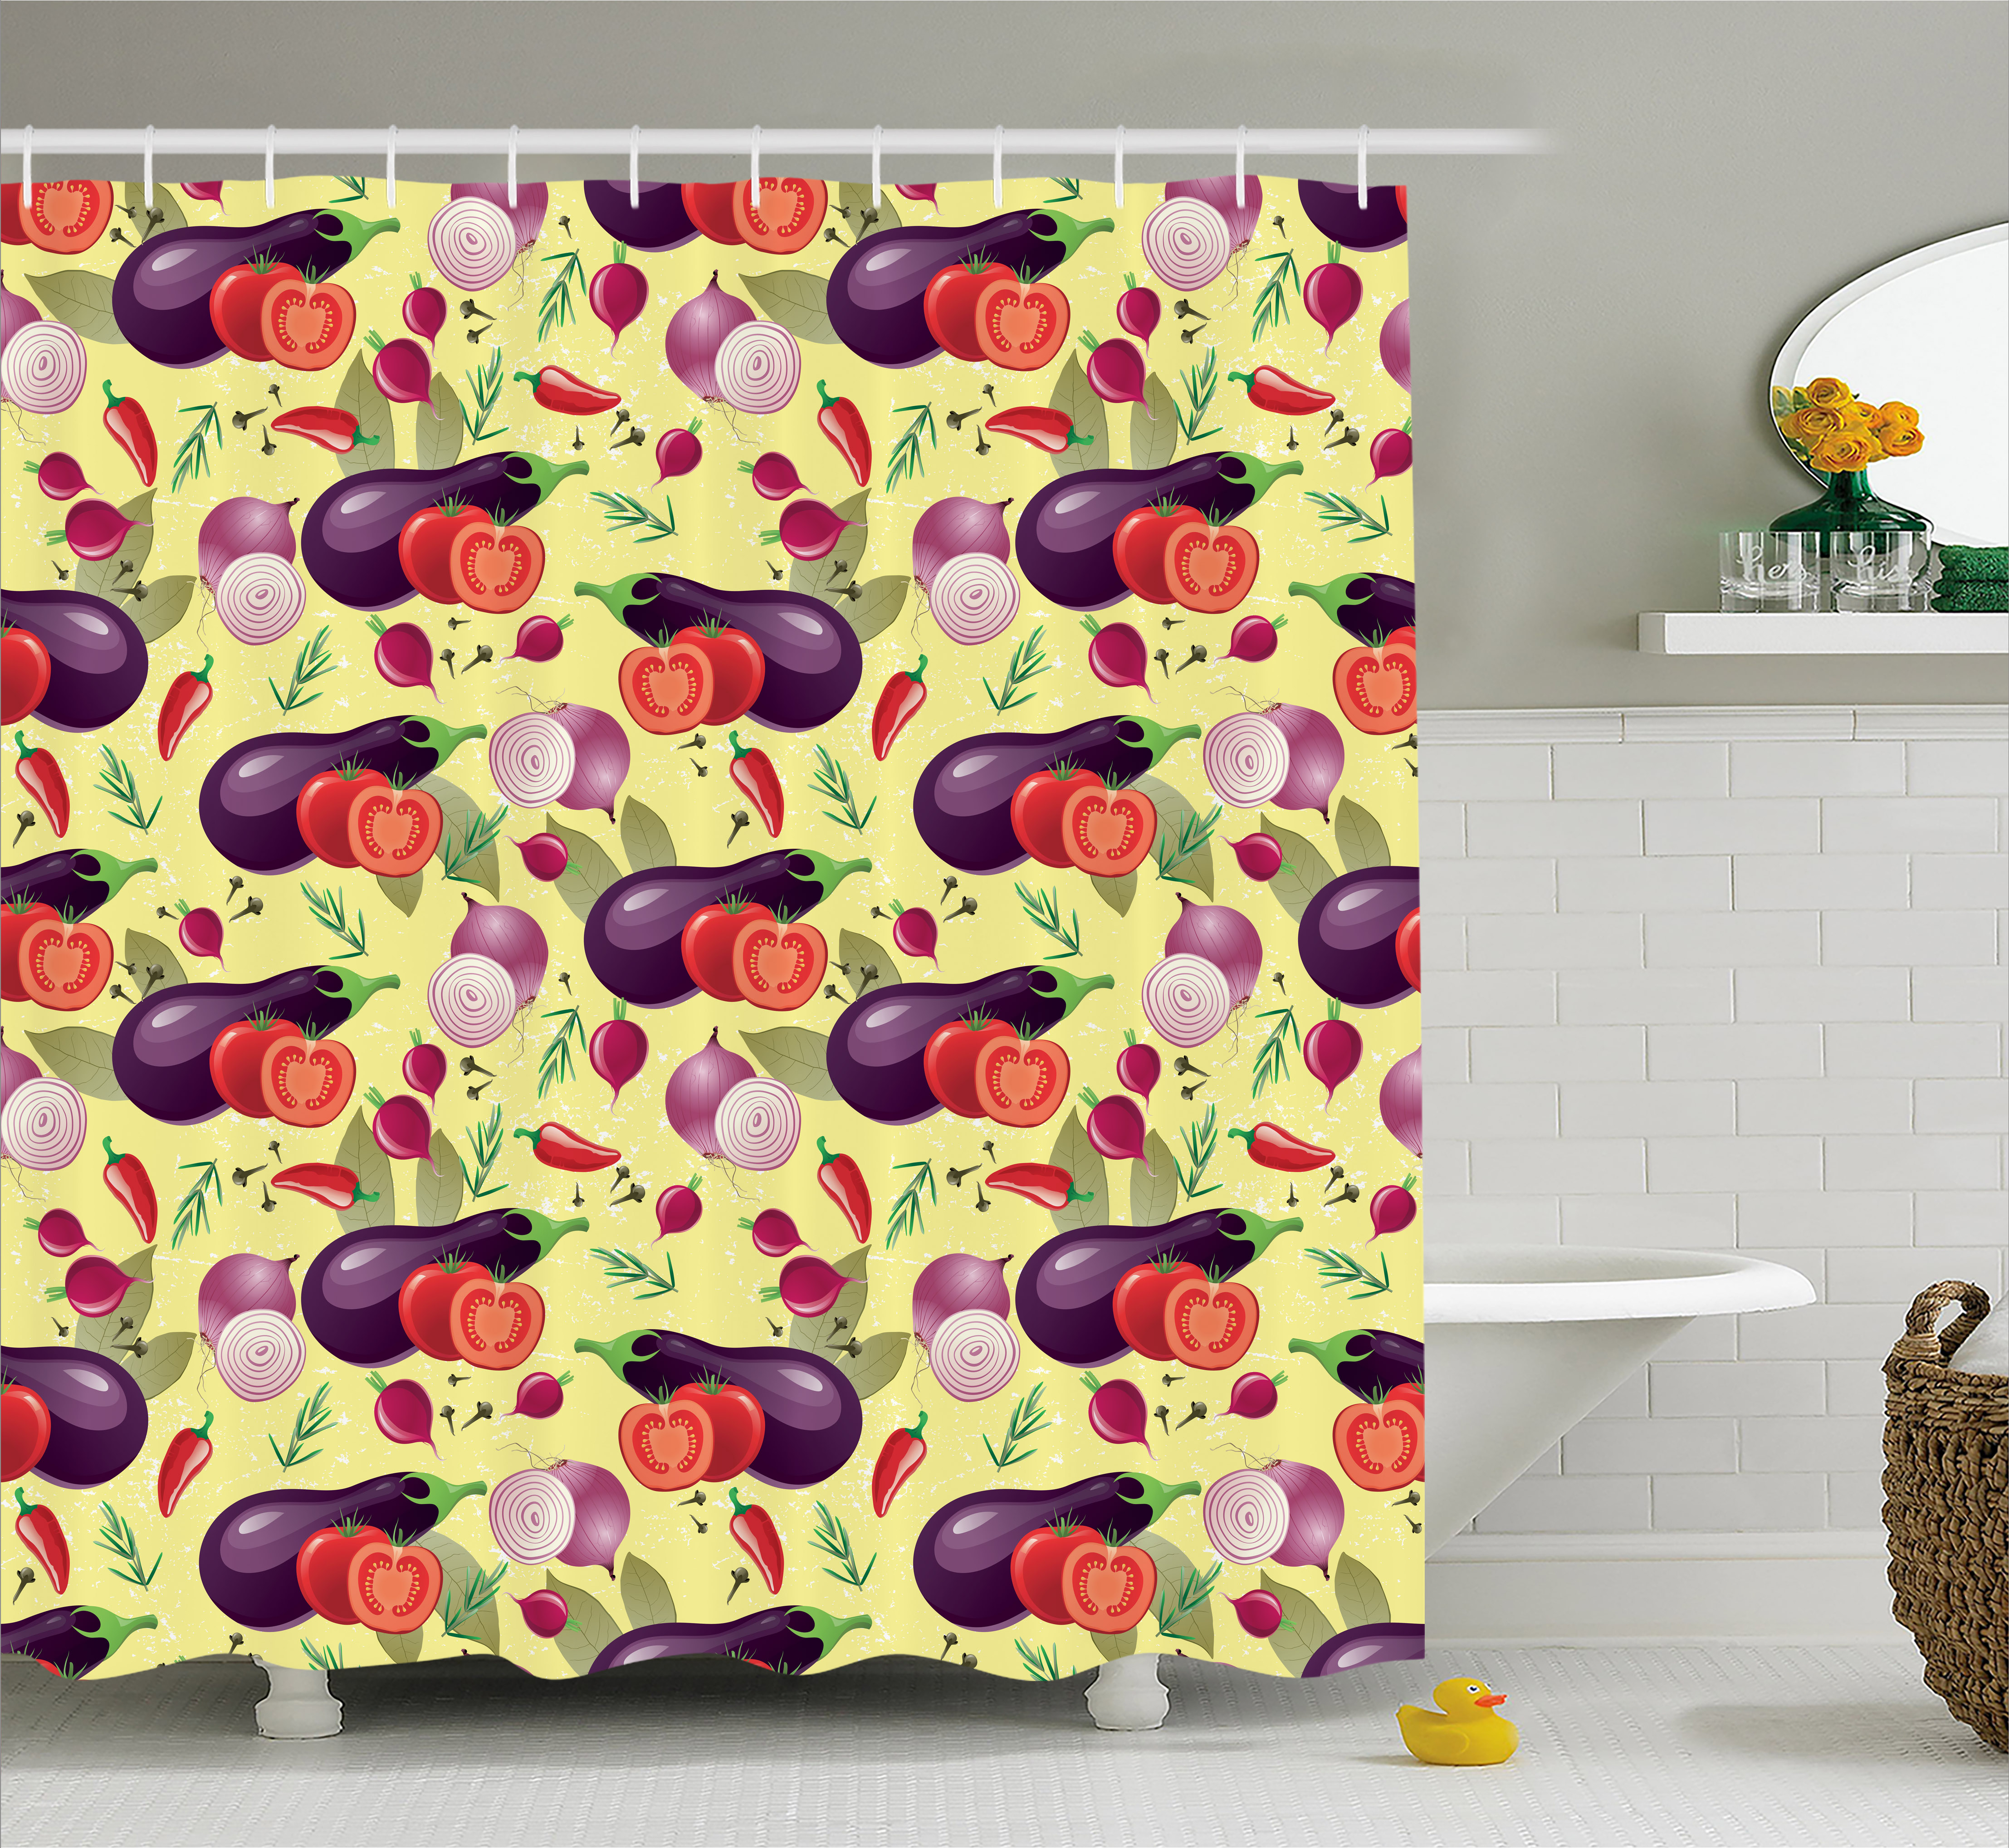 Eggplant Shower Curtain Tomato Relish Onion Going Green Eating Organic Tasty Preserve Nature Fabric Bathroom Set With Hooks 69W X 75L Inches